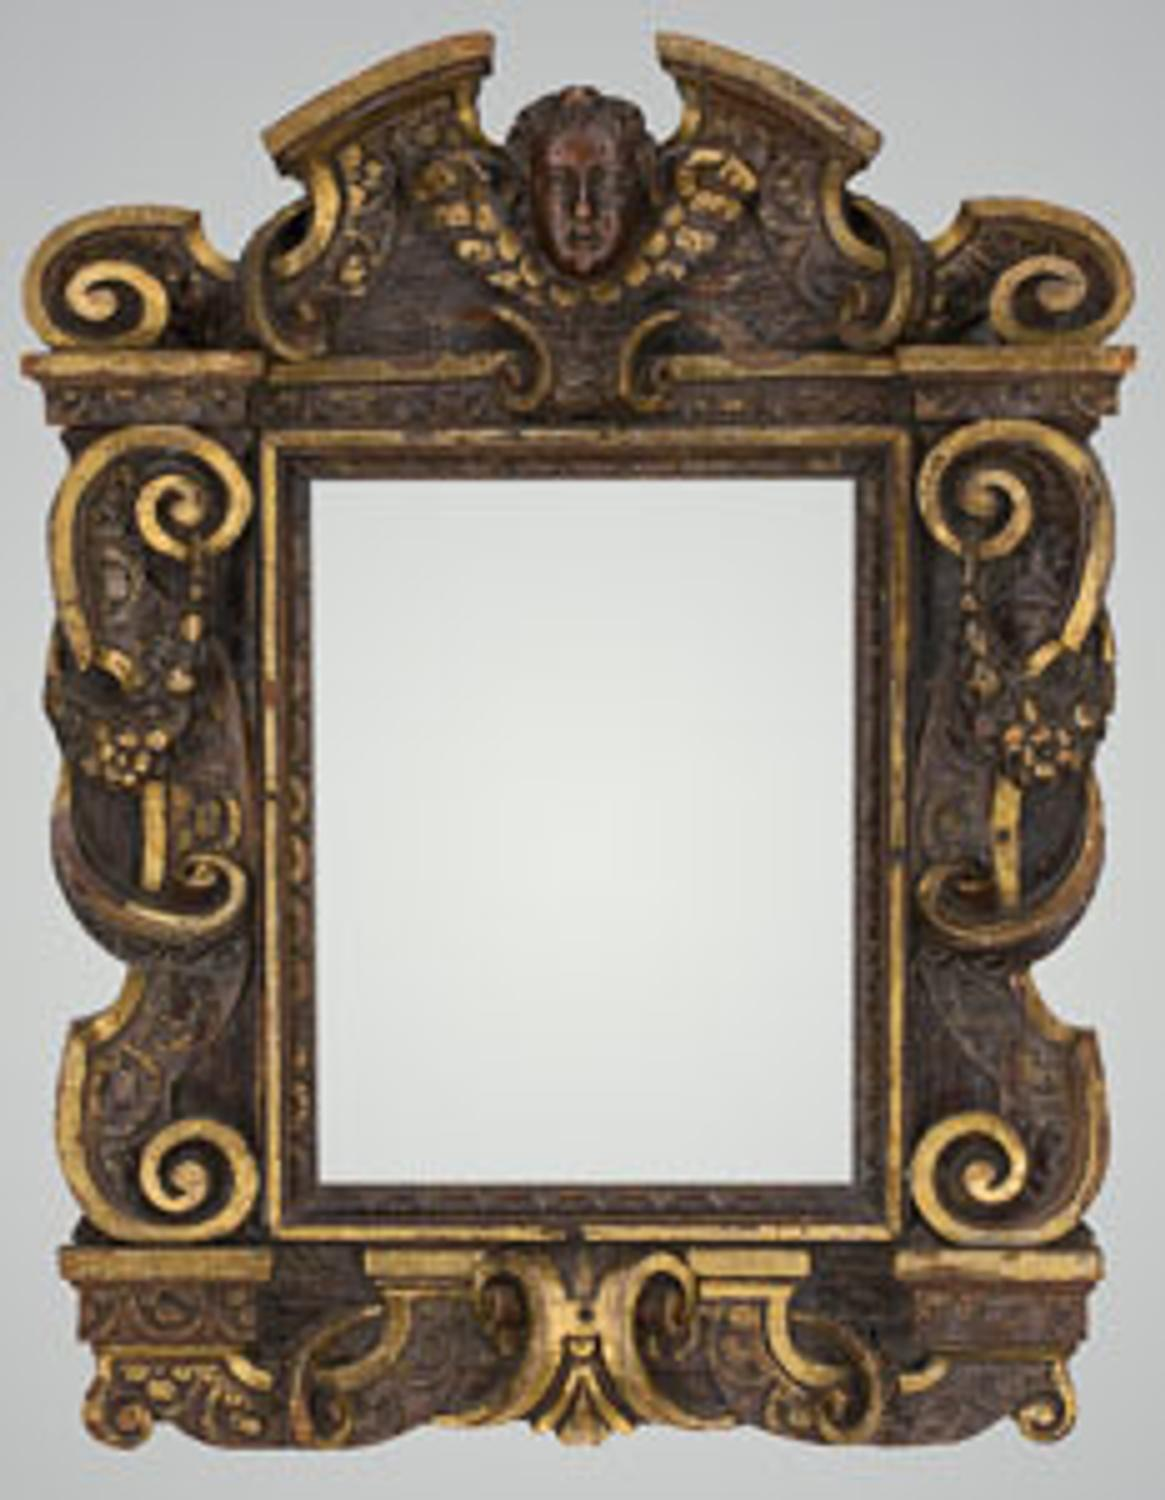 Silver Photo Frames Australia Lowy Frames Brings History Of Framing To The Curator 39s Eye